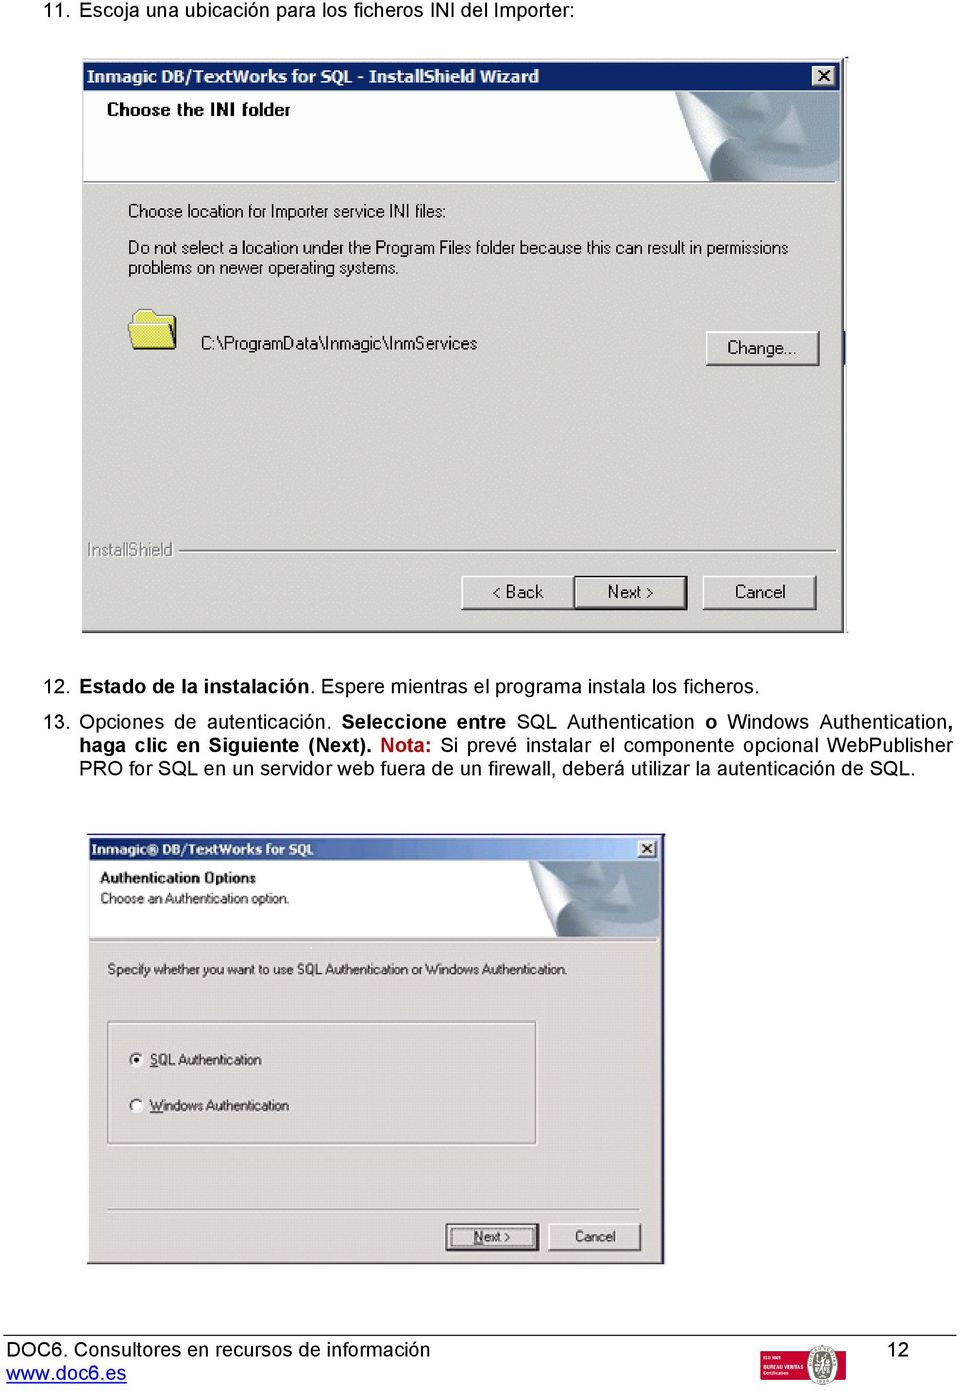 Seleccione entre SQL Authentication o Windows Authentication, haga clic en Siguiente (Next).